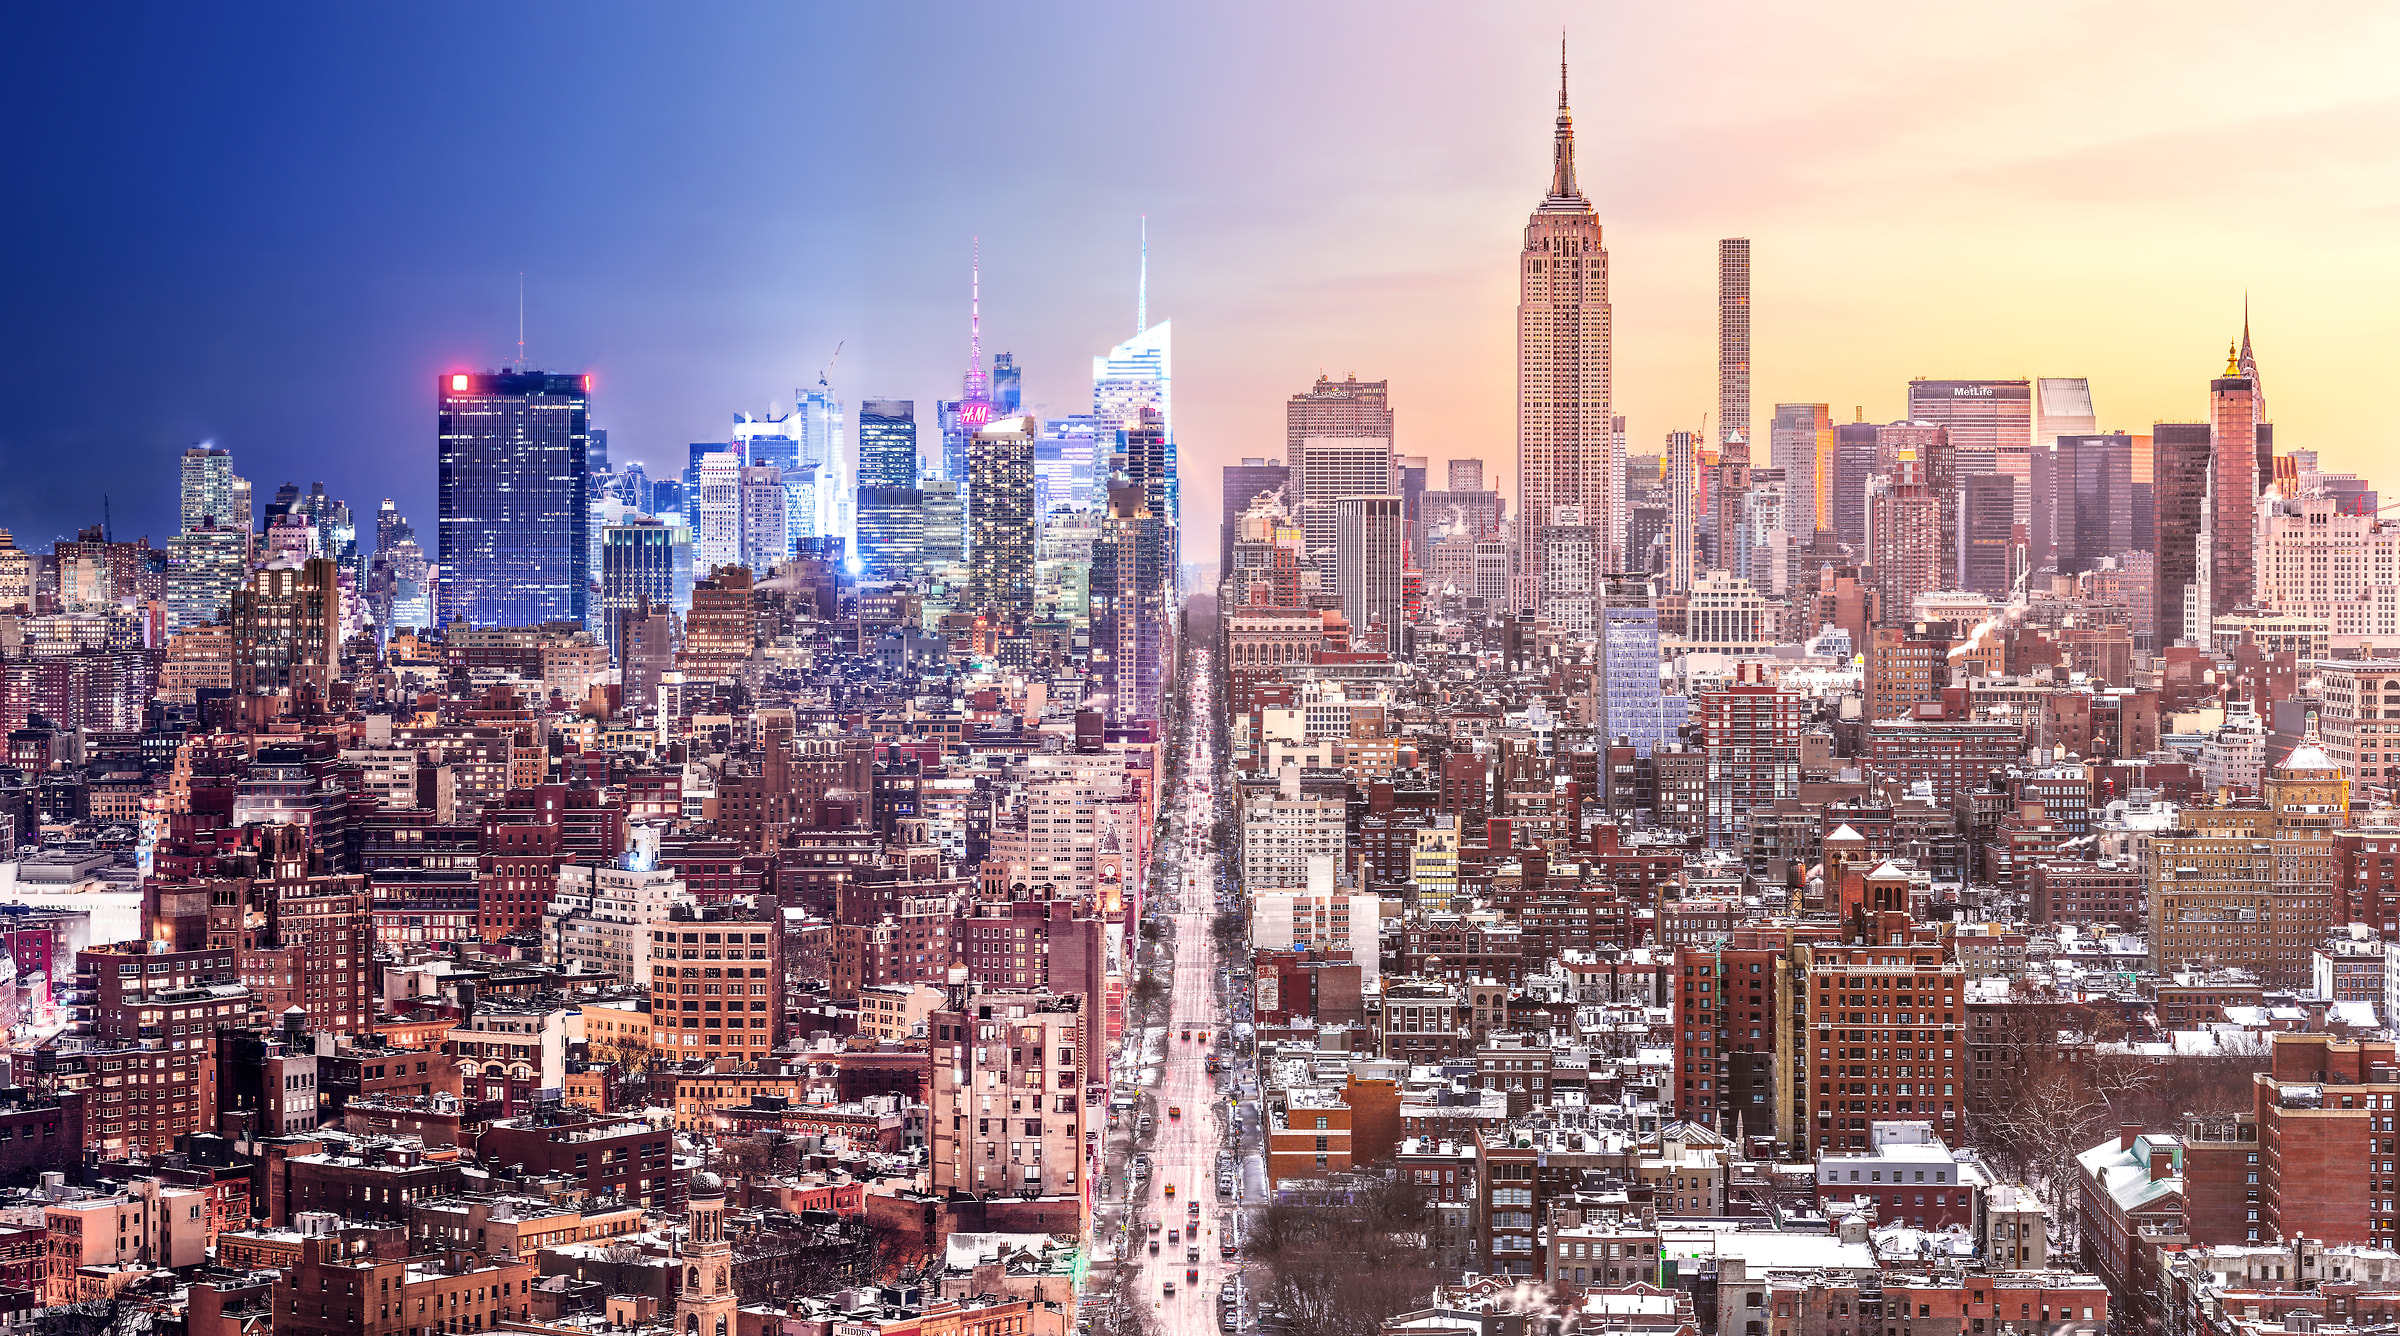 425 megapixels! A very high resolution photograph of the NYC skyline transitioning from night into day; fine art cityscape photo created by Dan Piech in Manhattan, New York City